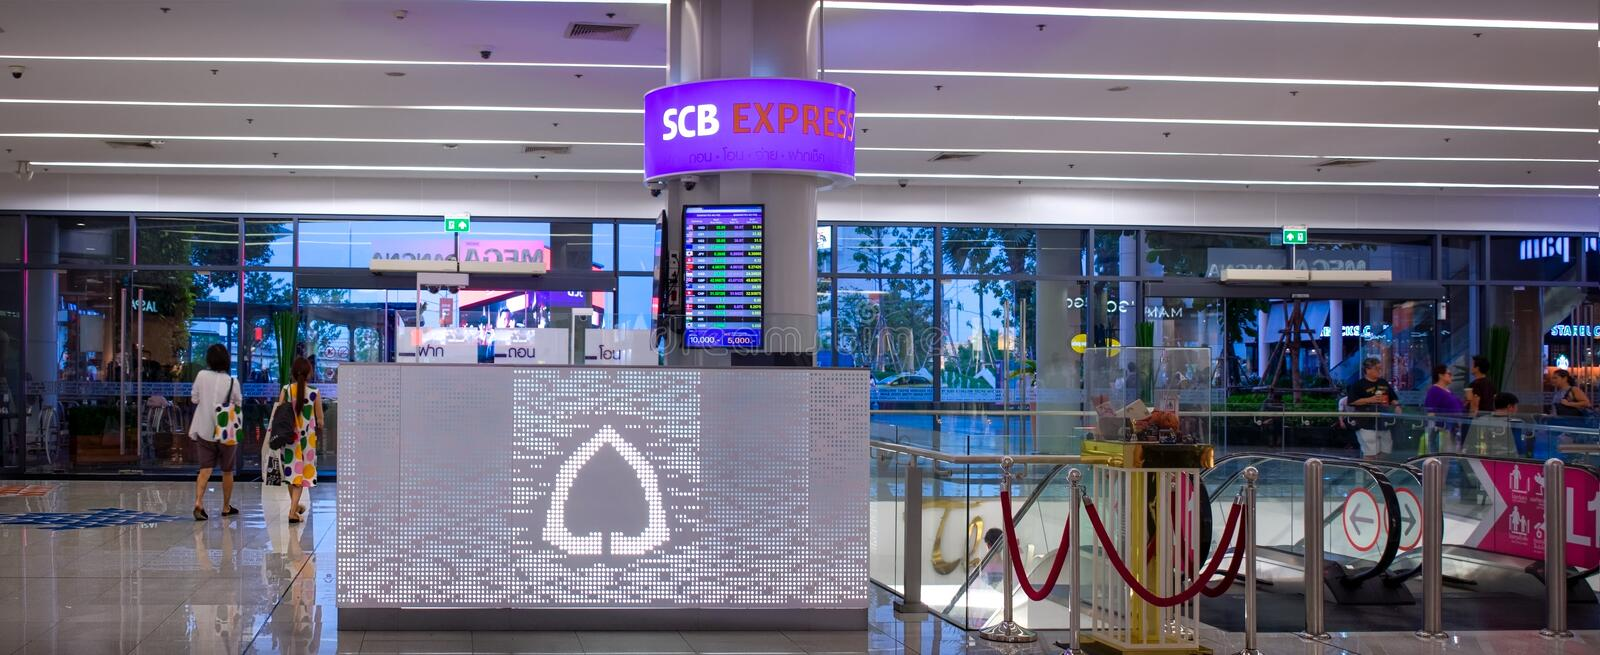 BANGKOK, THAILAND - APRIL 22: Siam Commercial Bank provides currency exchange services from a booth in Mega Bangna shopping mall stock photography